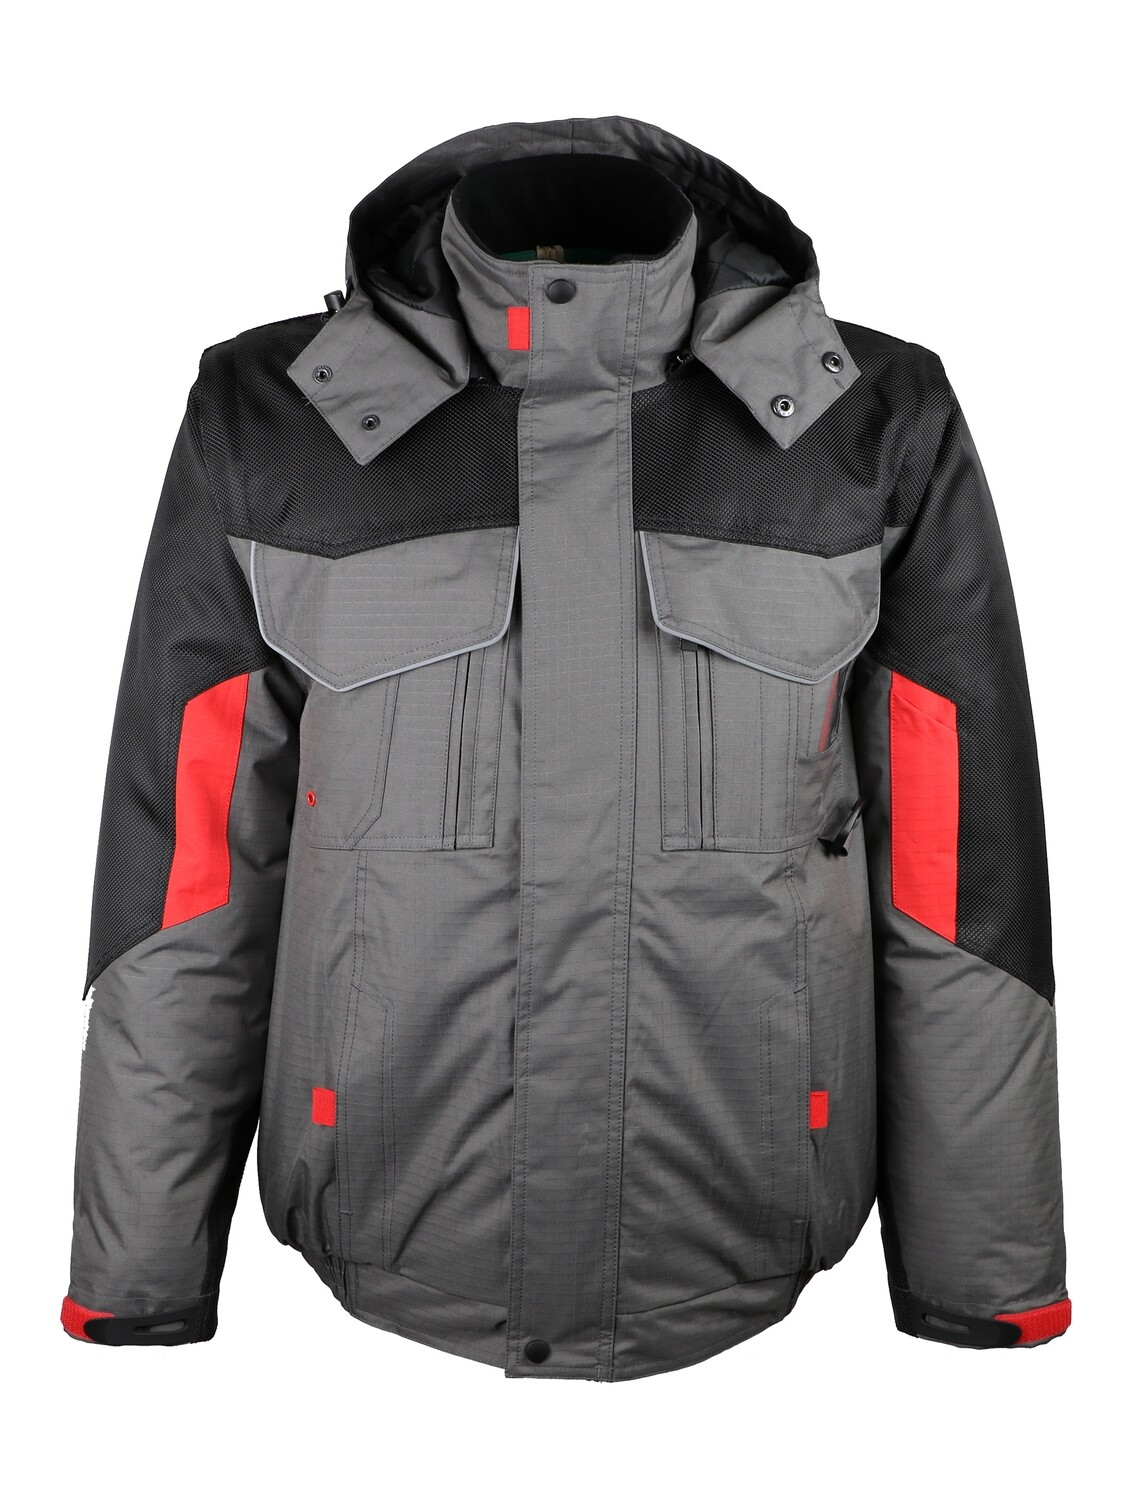 Blouson 2 x 1. Polyester Rip-Stop. Manches amovibles.